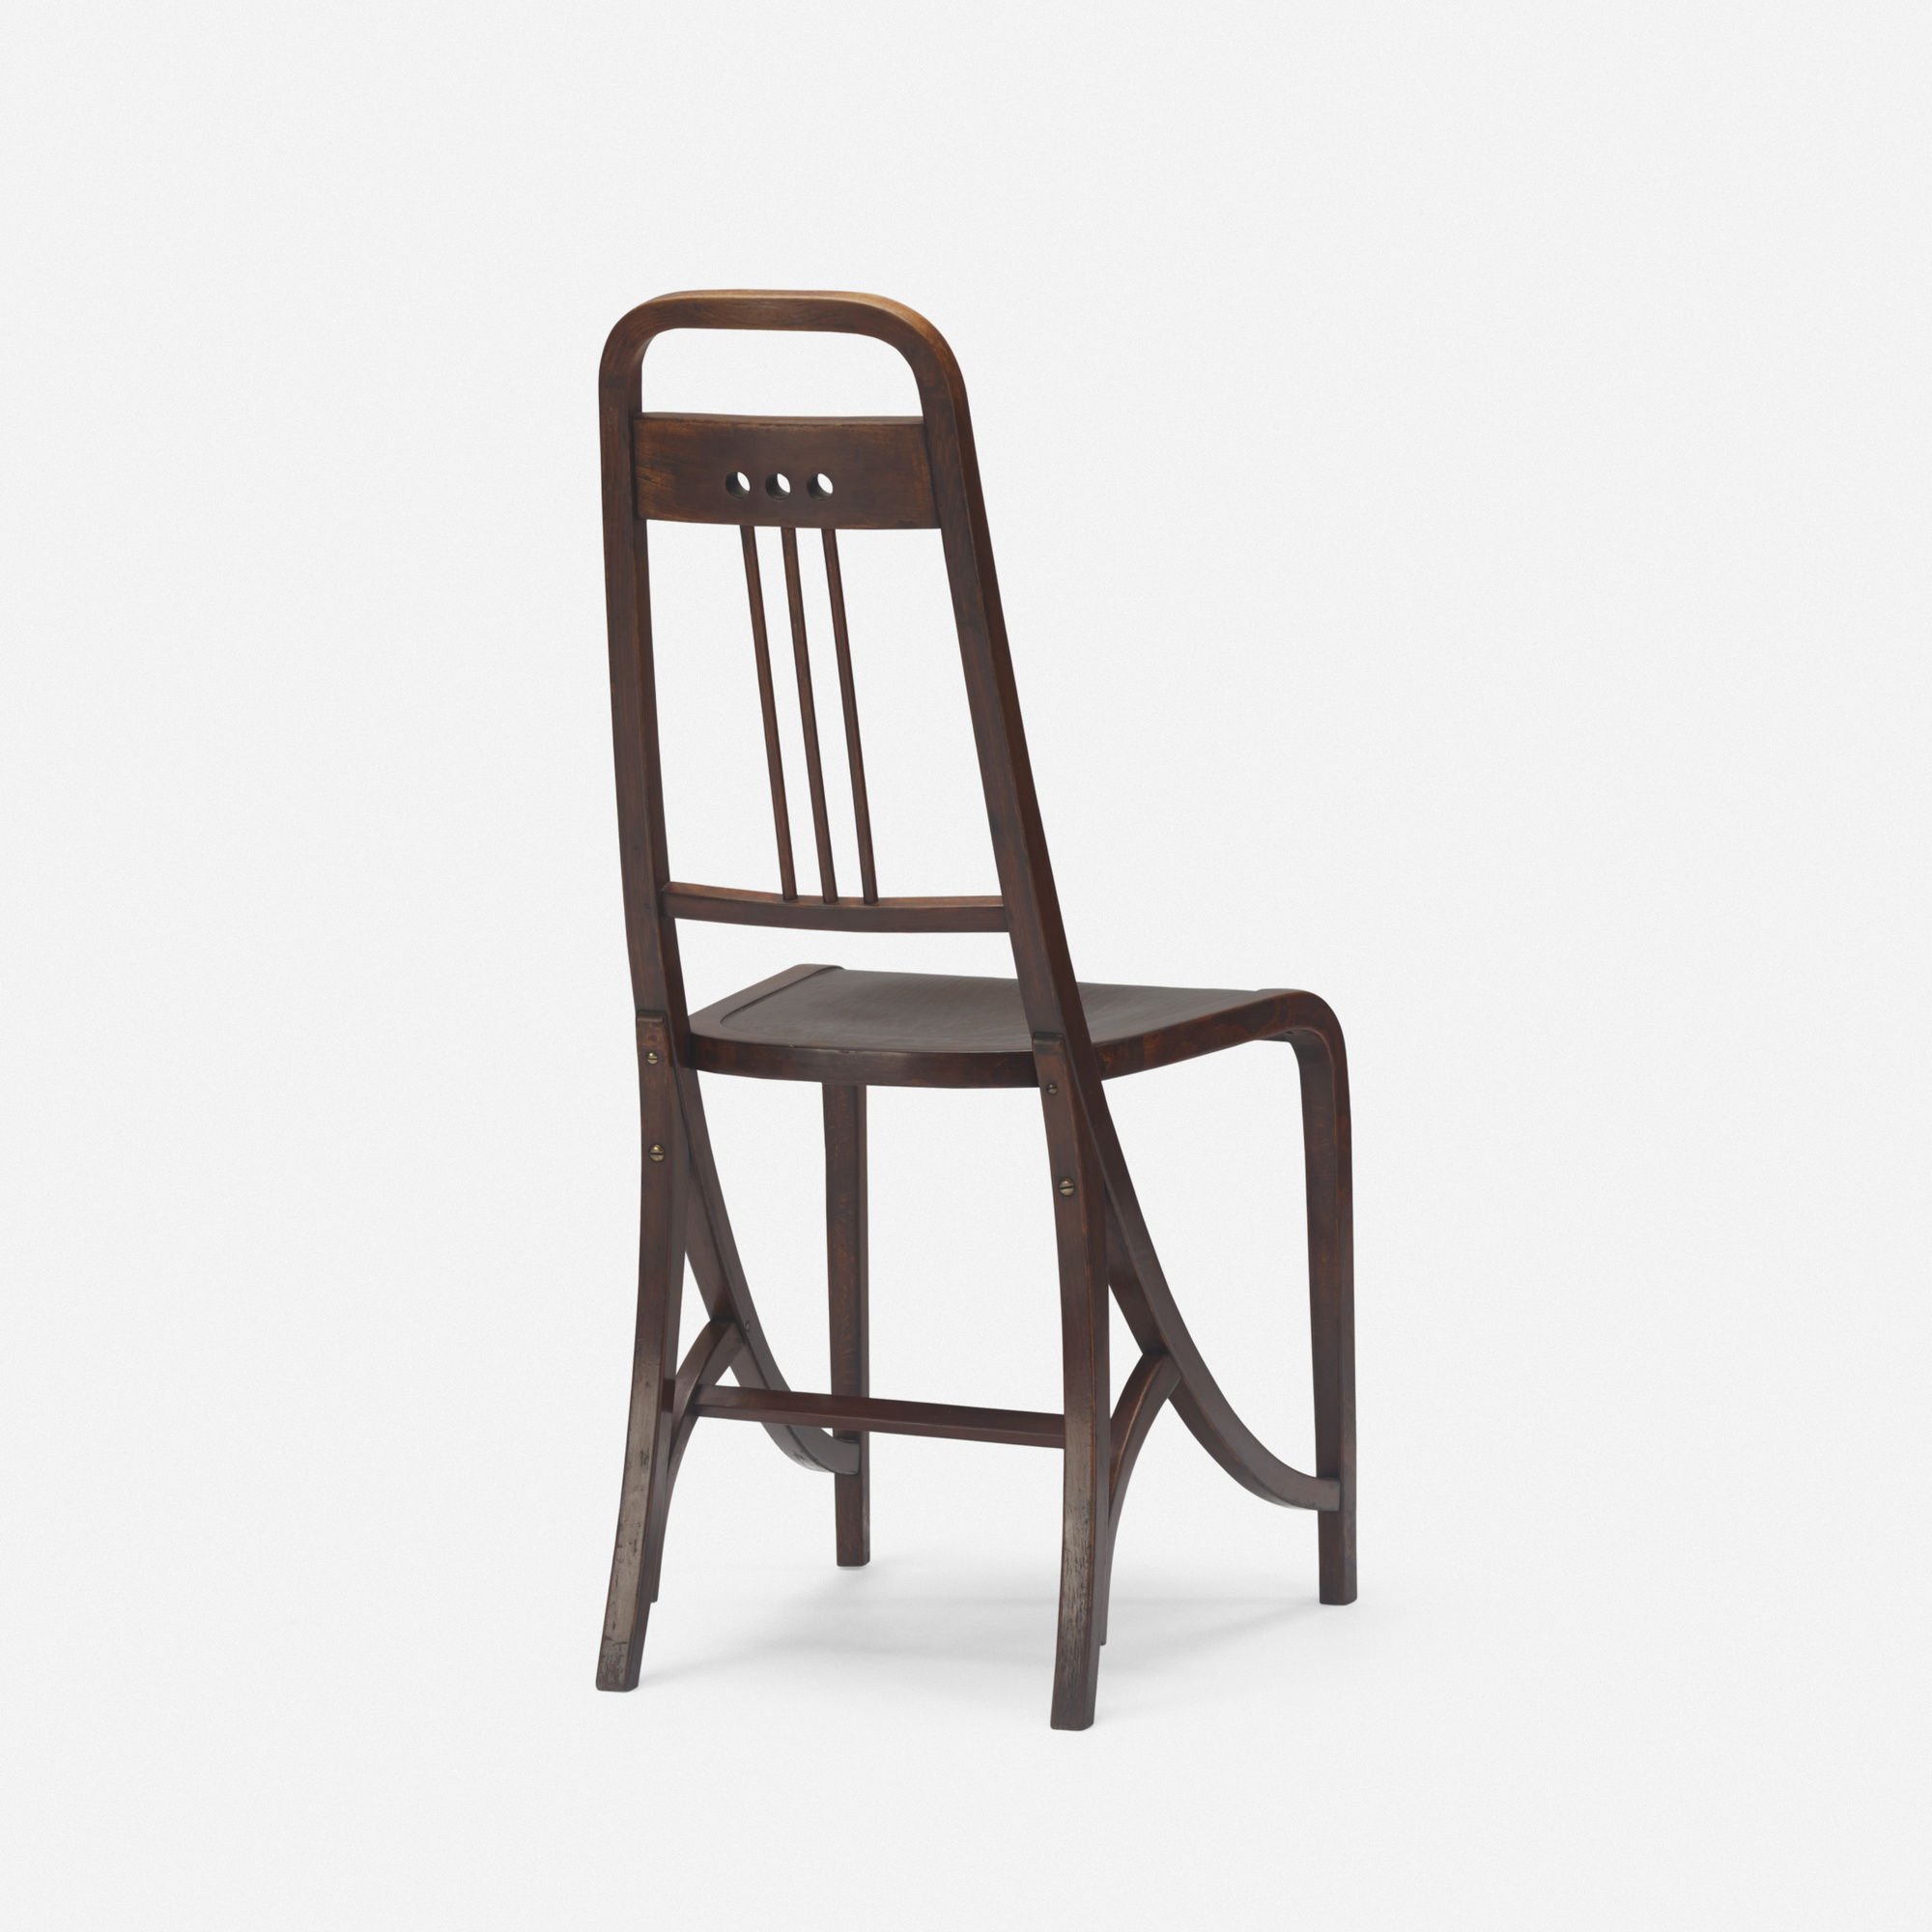 242: Thonet / chair, model 511 (2 of 4)